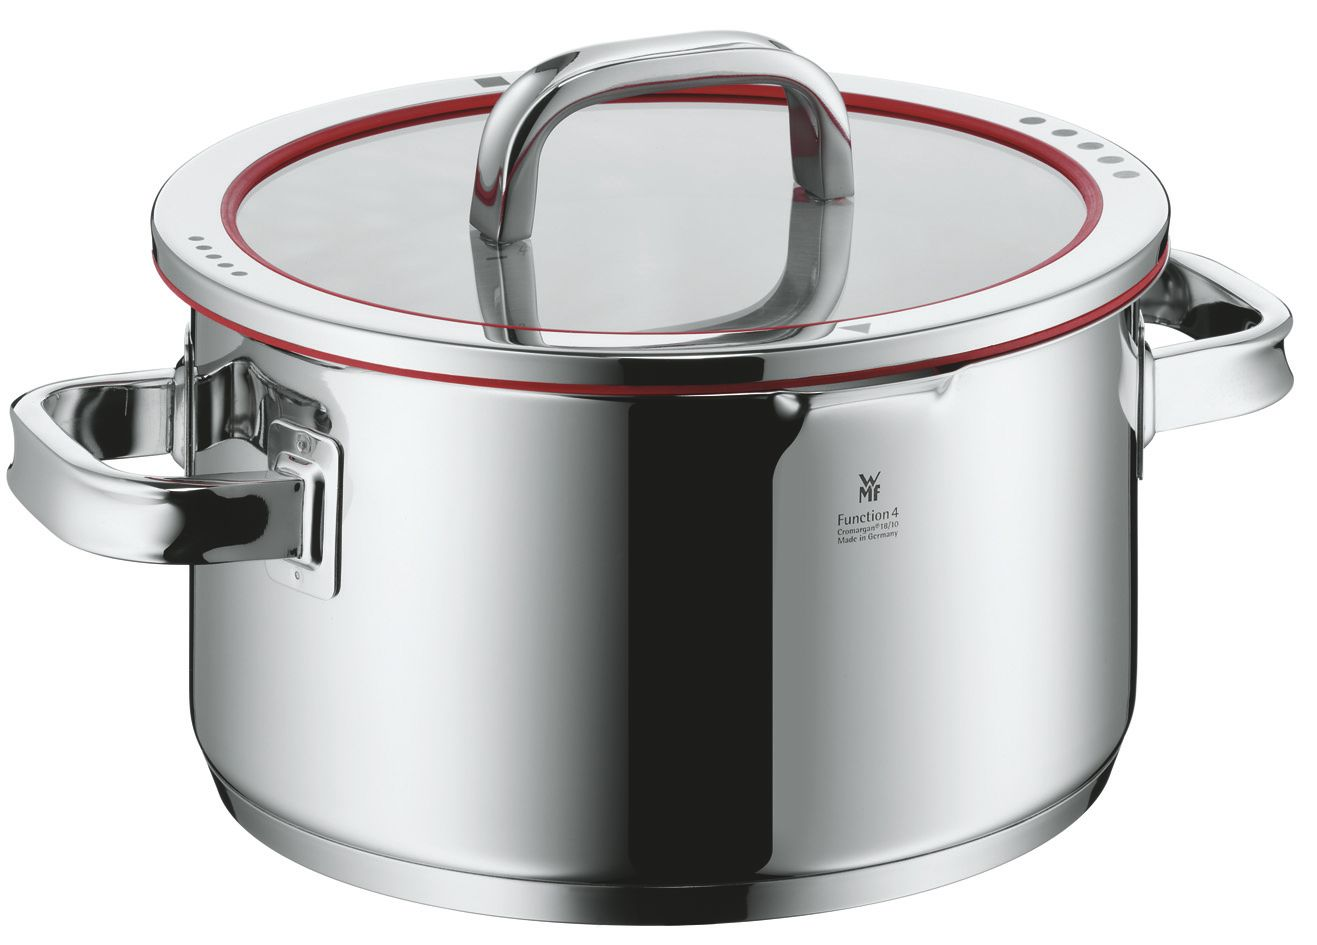 WMF WMF Function 4 high casserole with lid 24cm